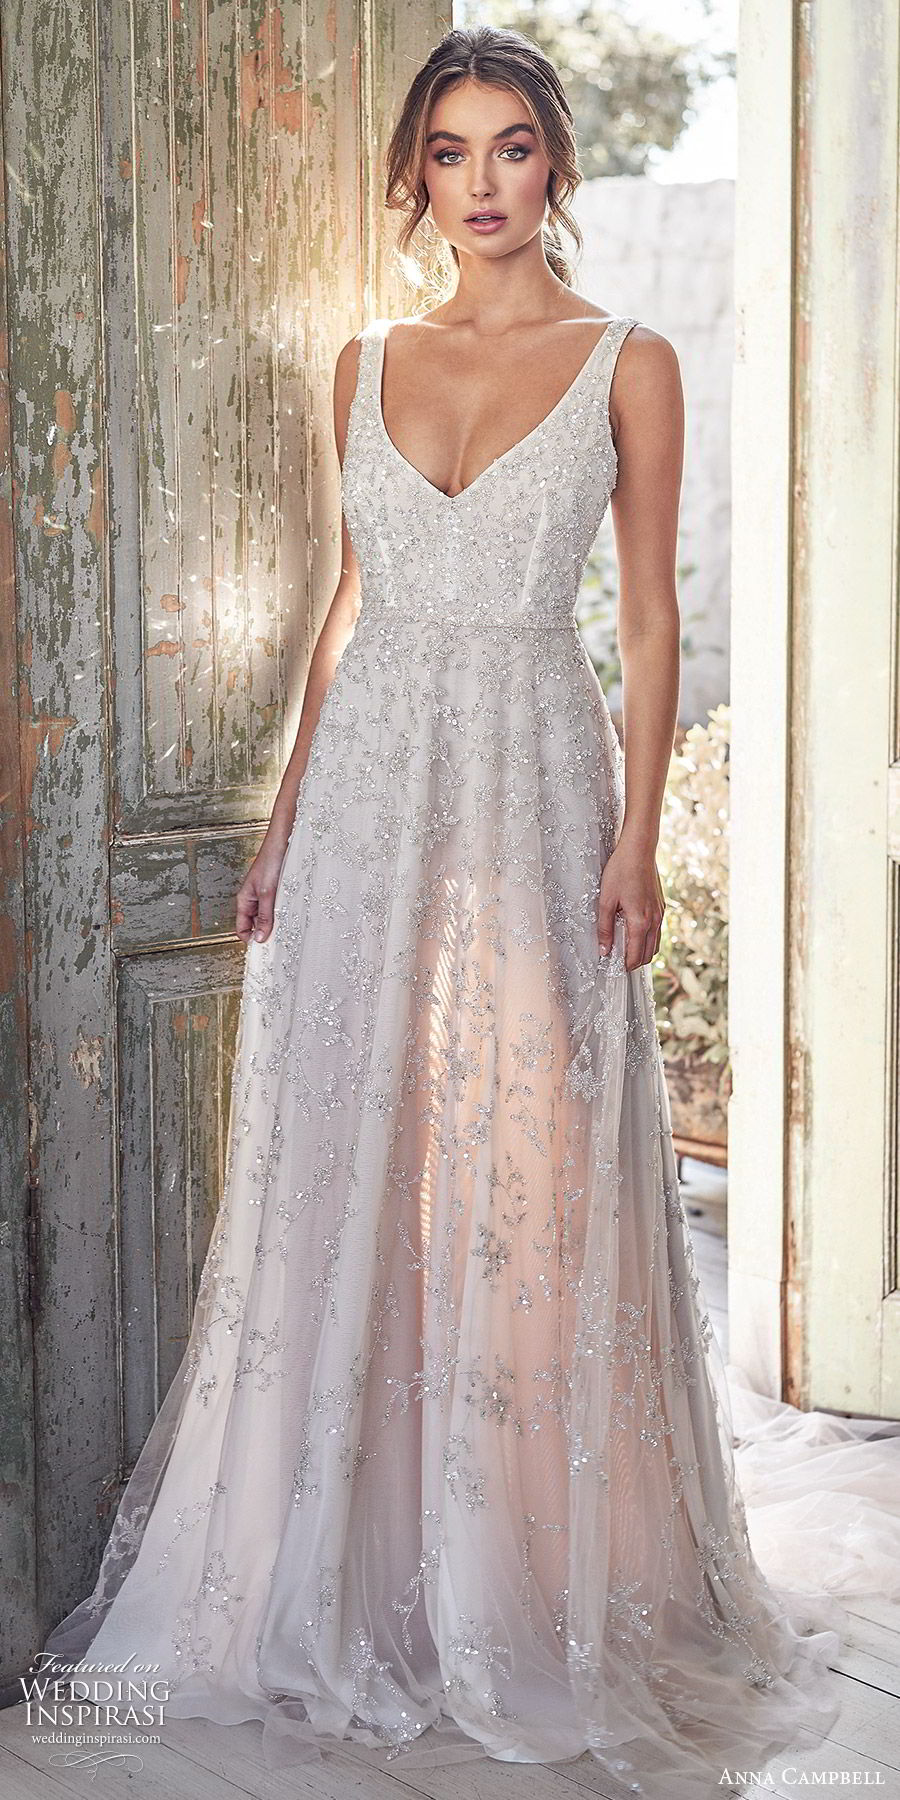 anna campbell 2020 bridal sleeveless thick straps fully embellished ball gown a line wedding dress (4) romantic glitzy blush color chapel train mv